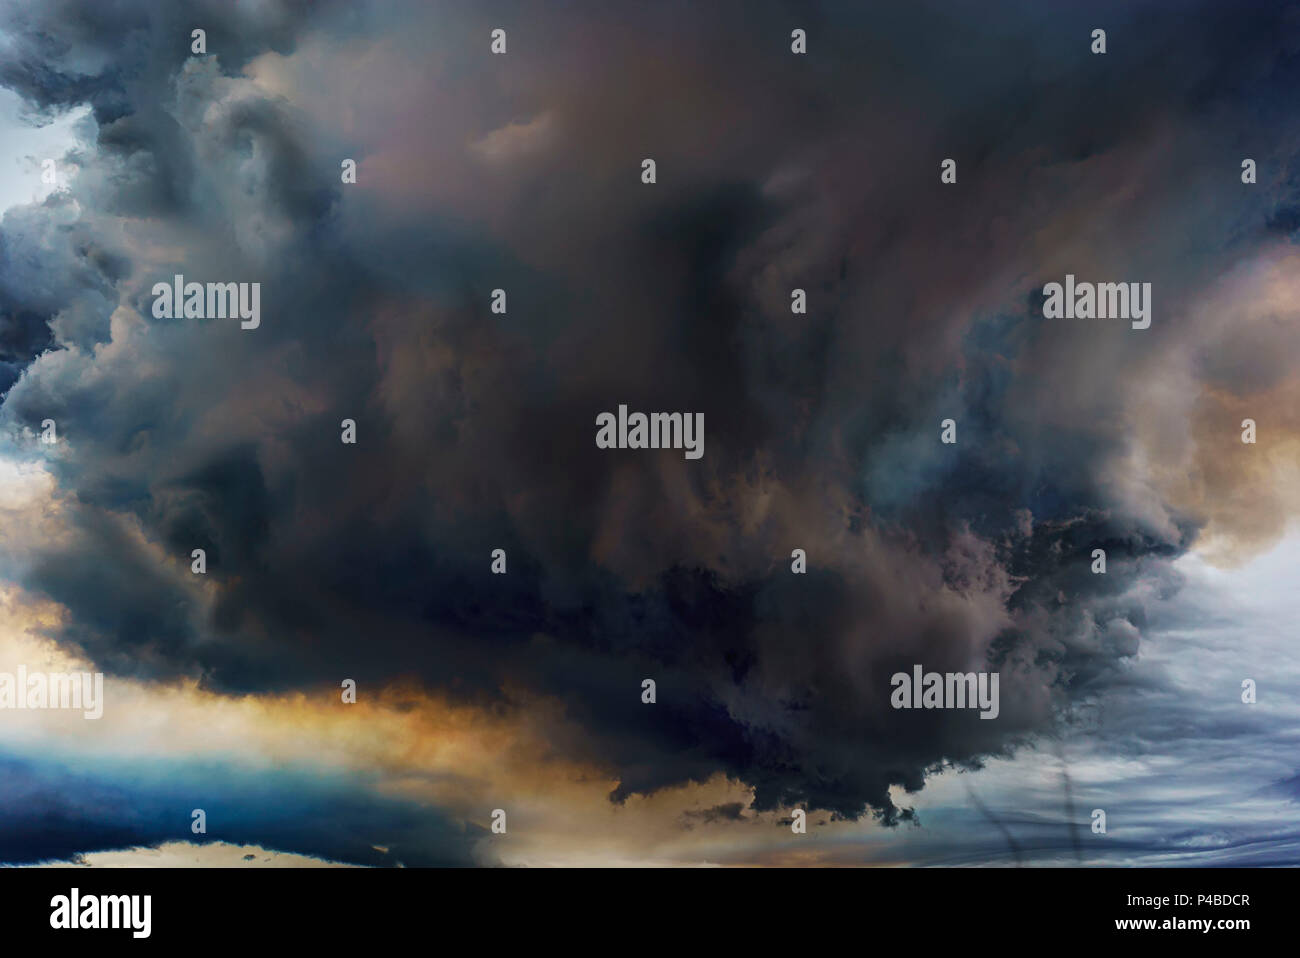 Volcanic Plumes with toxic gases, Holuhraun Fissure Eruption, Iceland. August 29, 2014 a fissure eruption started in Holuhraun at the northern end of a magma intrusion, which had moved progressively north, from the Bardarbunga volcano. Bardarbunga is a stratovolcano located under Vatnajokull, Iceland's most extensive glacier. Picture Date-Sept. 2, 2014 - Stock Image